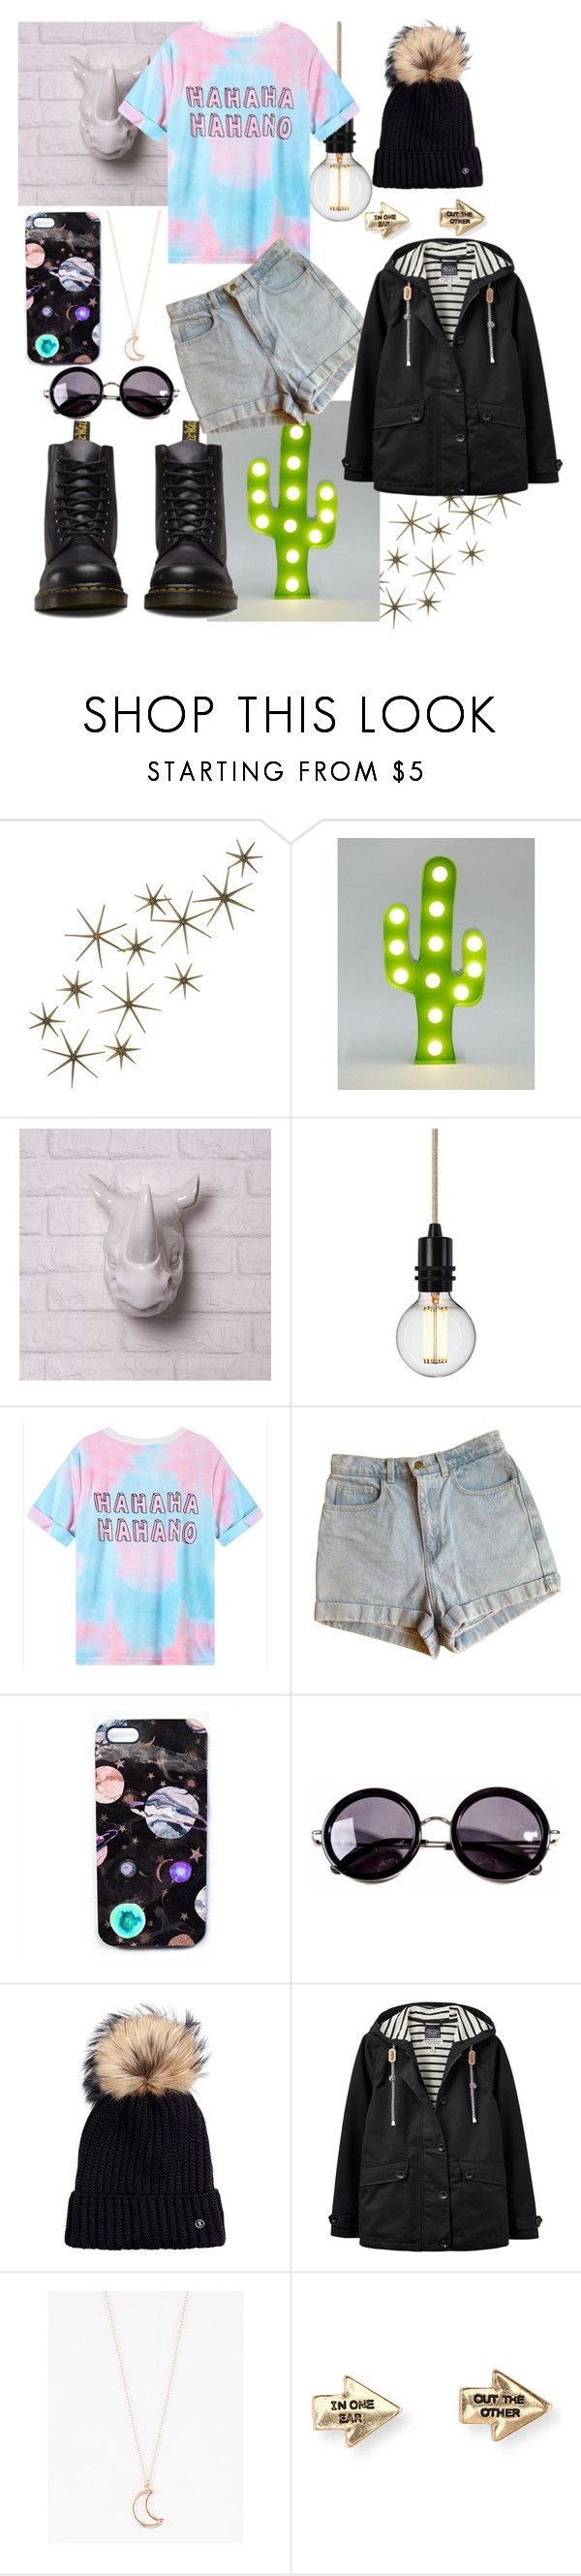 """How bout NOOOOO"" by blackzeal ❤ liked on Polyvore featuring Global Views, Sass & Belle, American Apparel, Nikki Strange, Linda Farrow, Bogner, Joules, Full Tilt, Aéropostale and Dr. Martens"